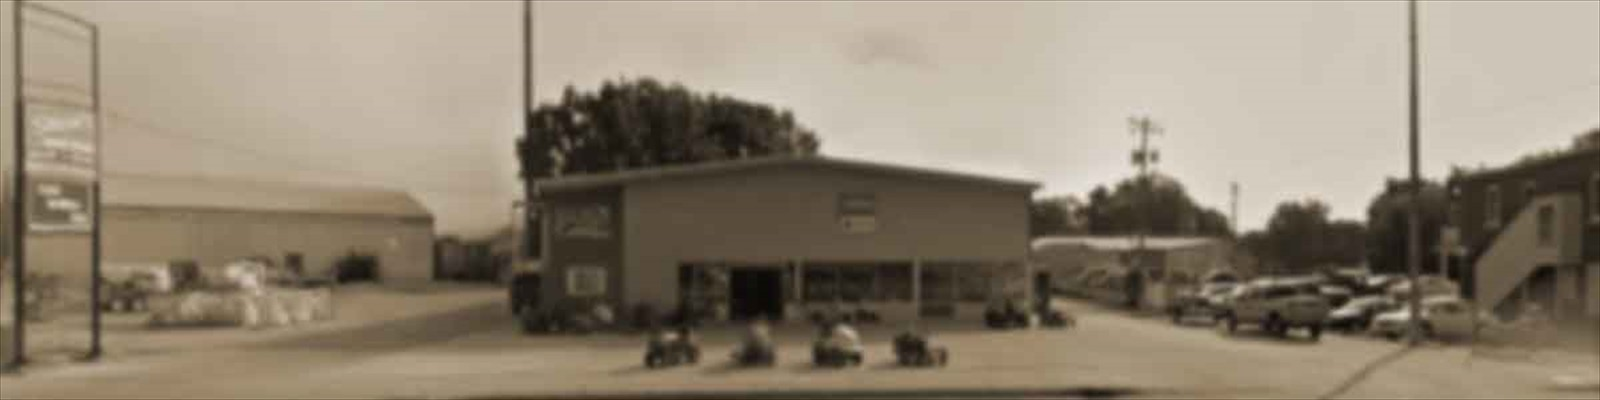 Steve's Small Engine, LLC ~ 3425 Mormon Coulee Rd, La Crosse, WI